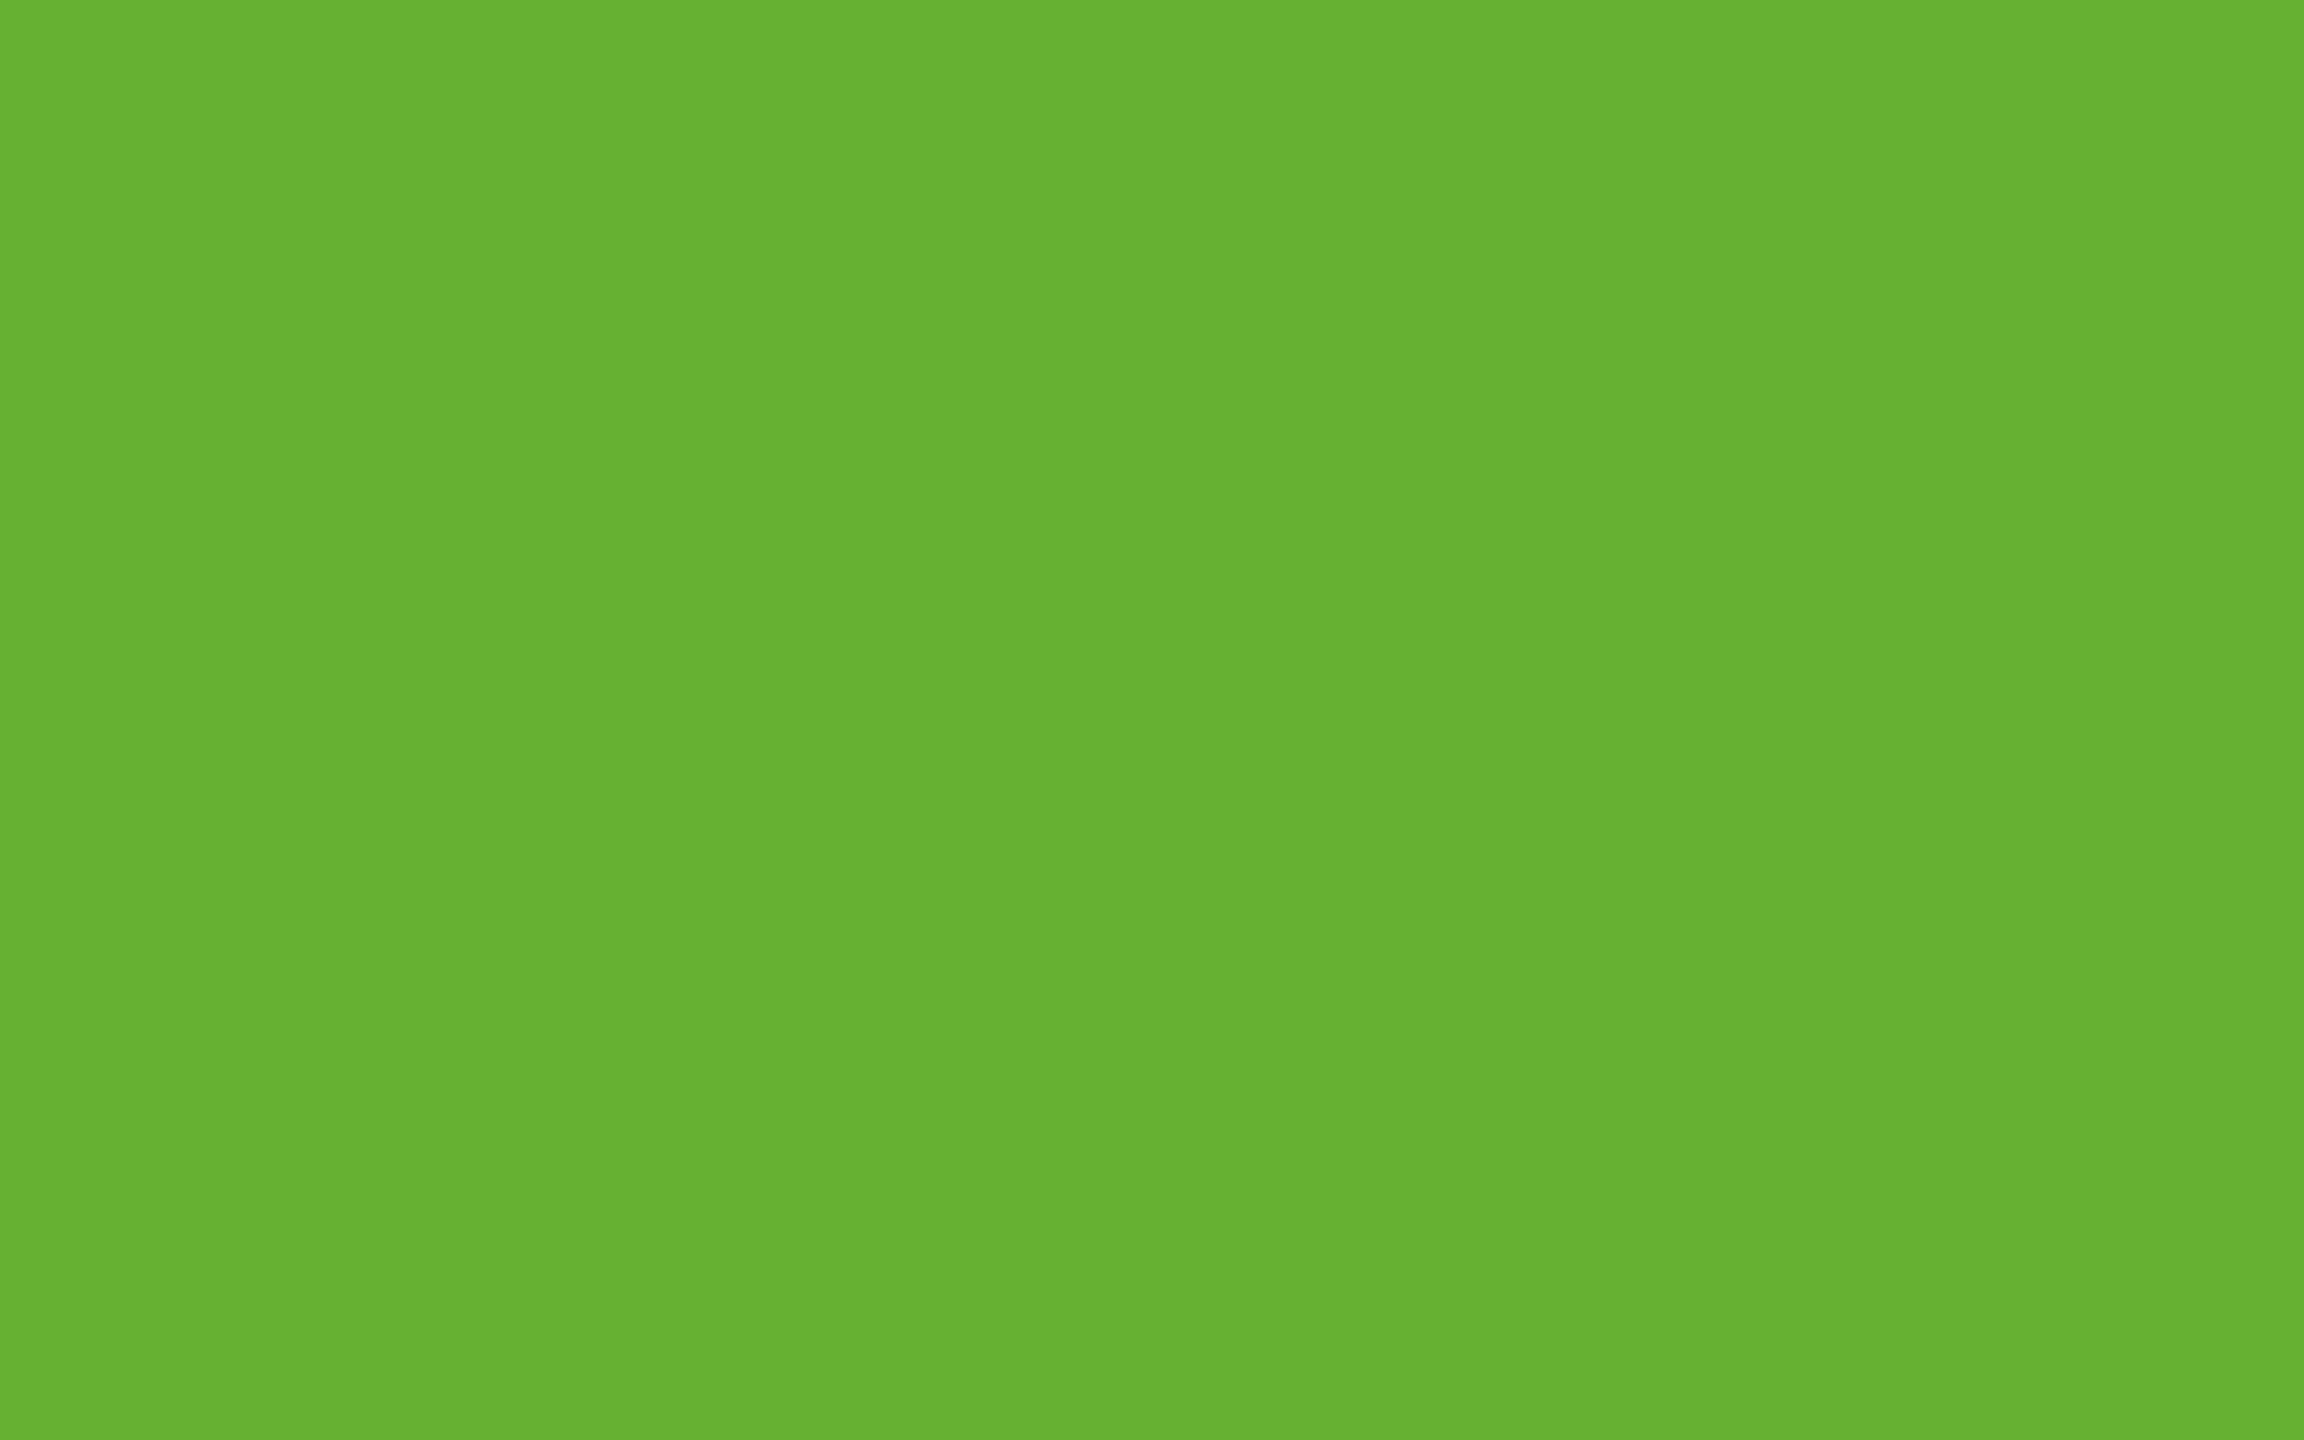 2304x1440 Green RYB Solid Color Background